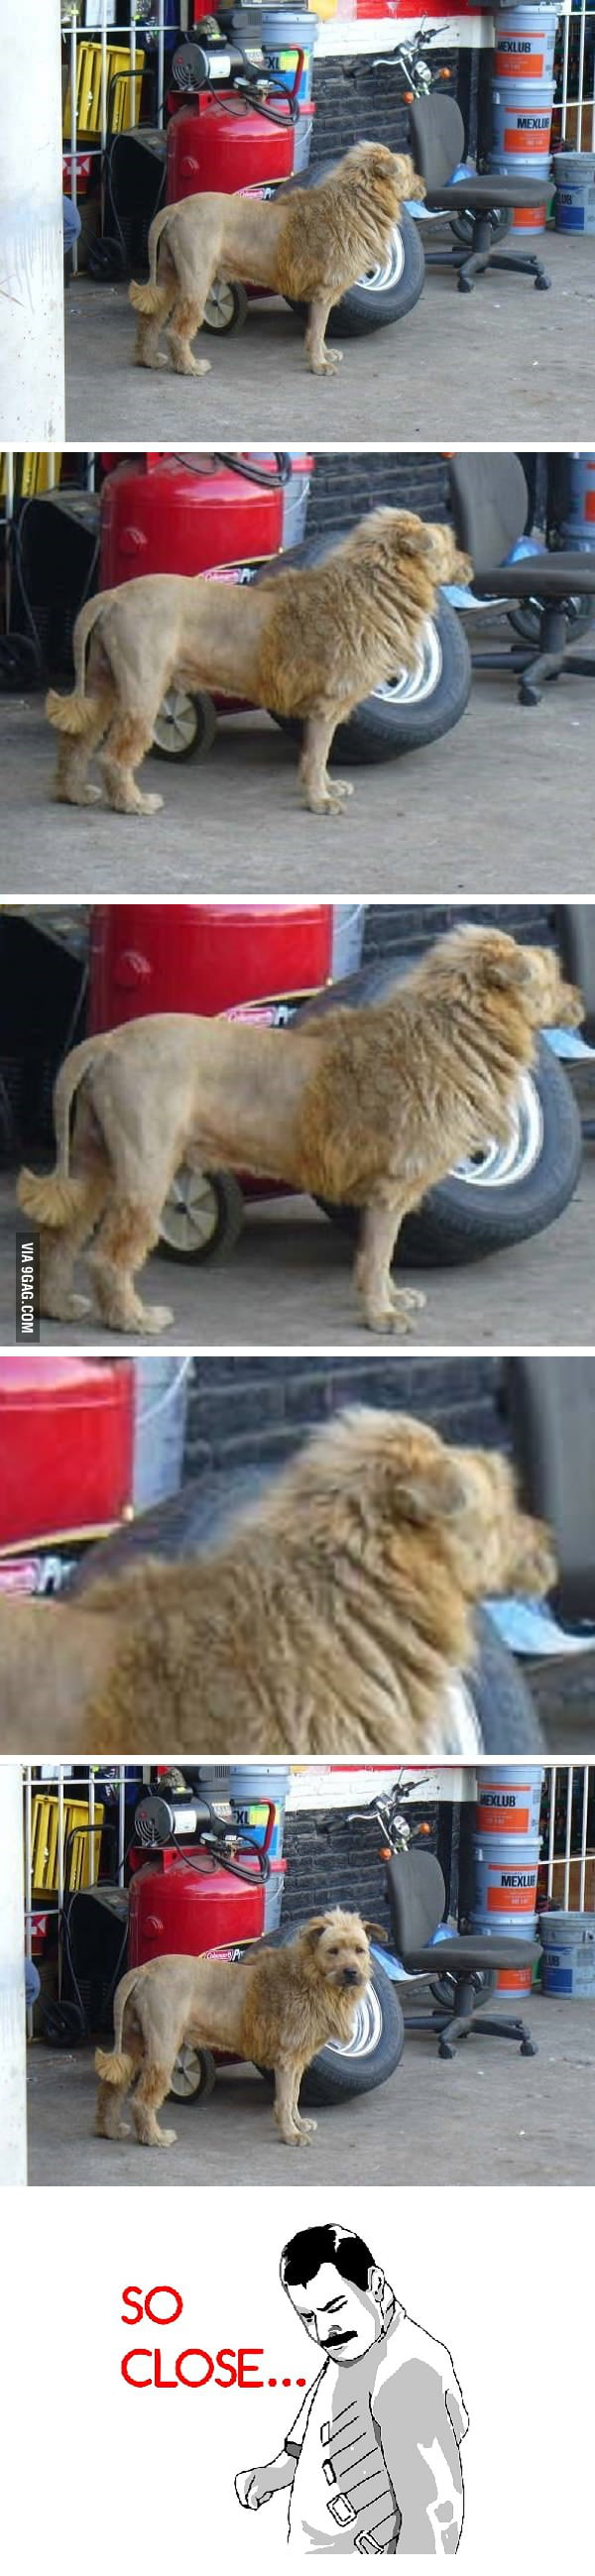 A Lion in the City?